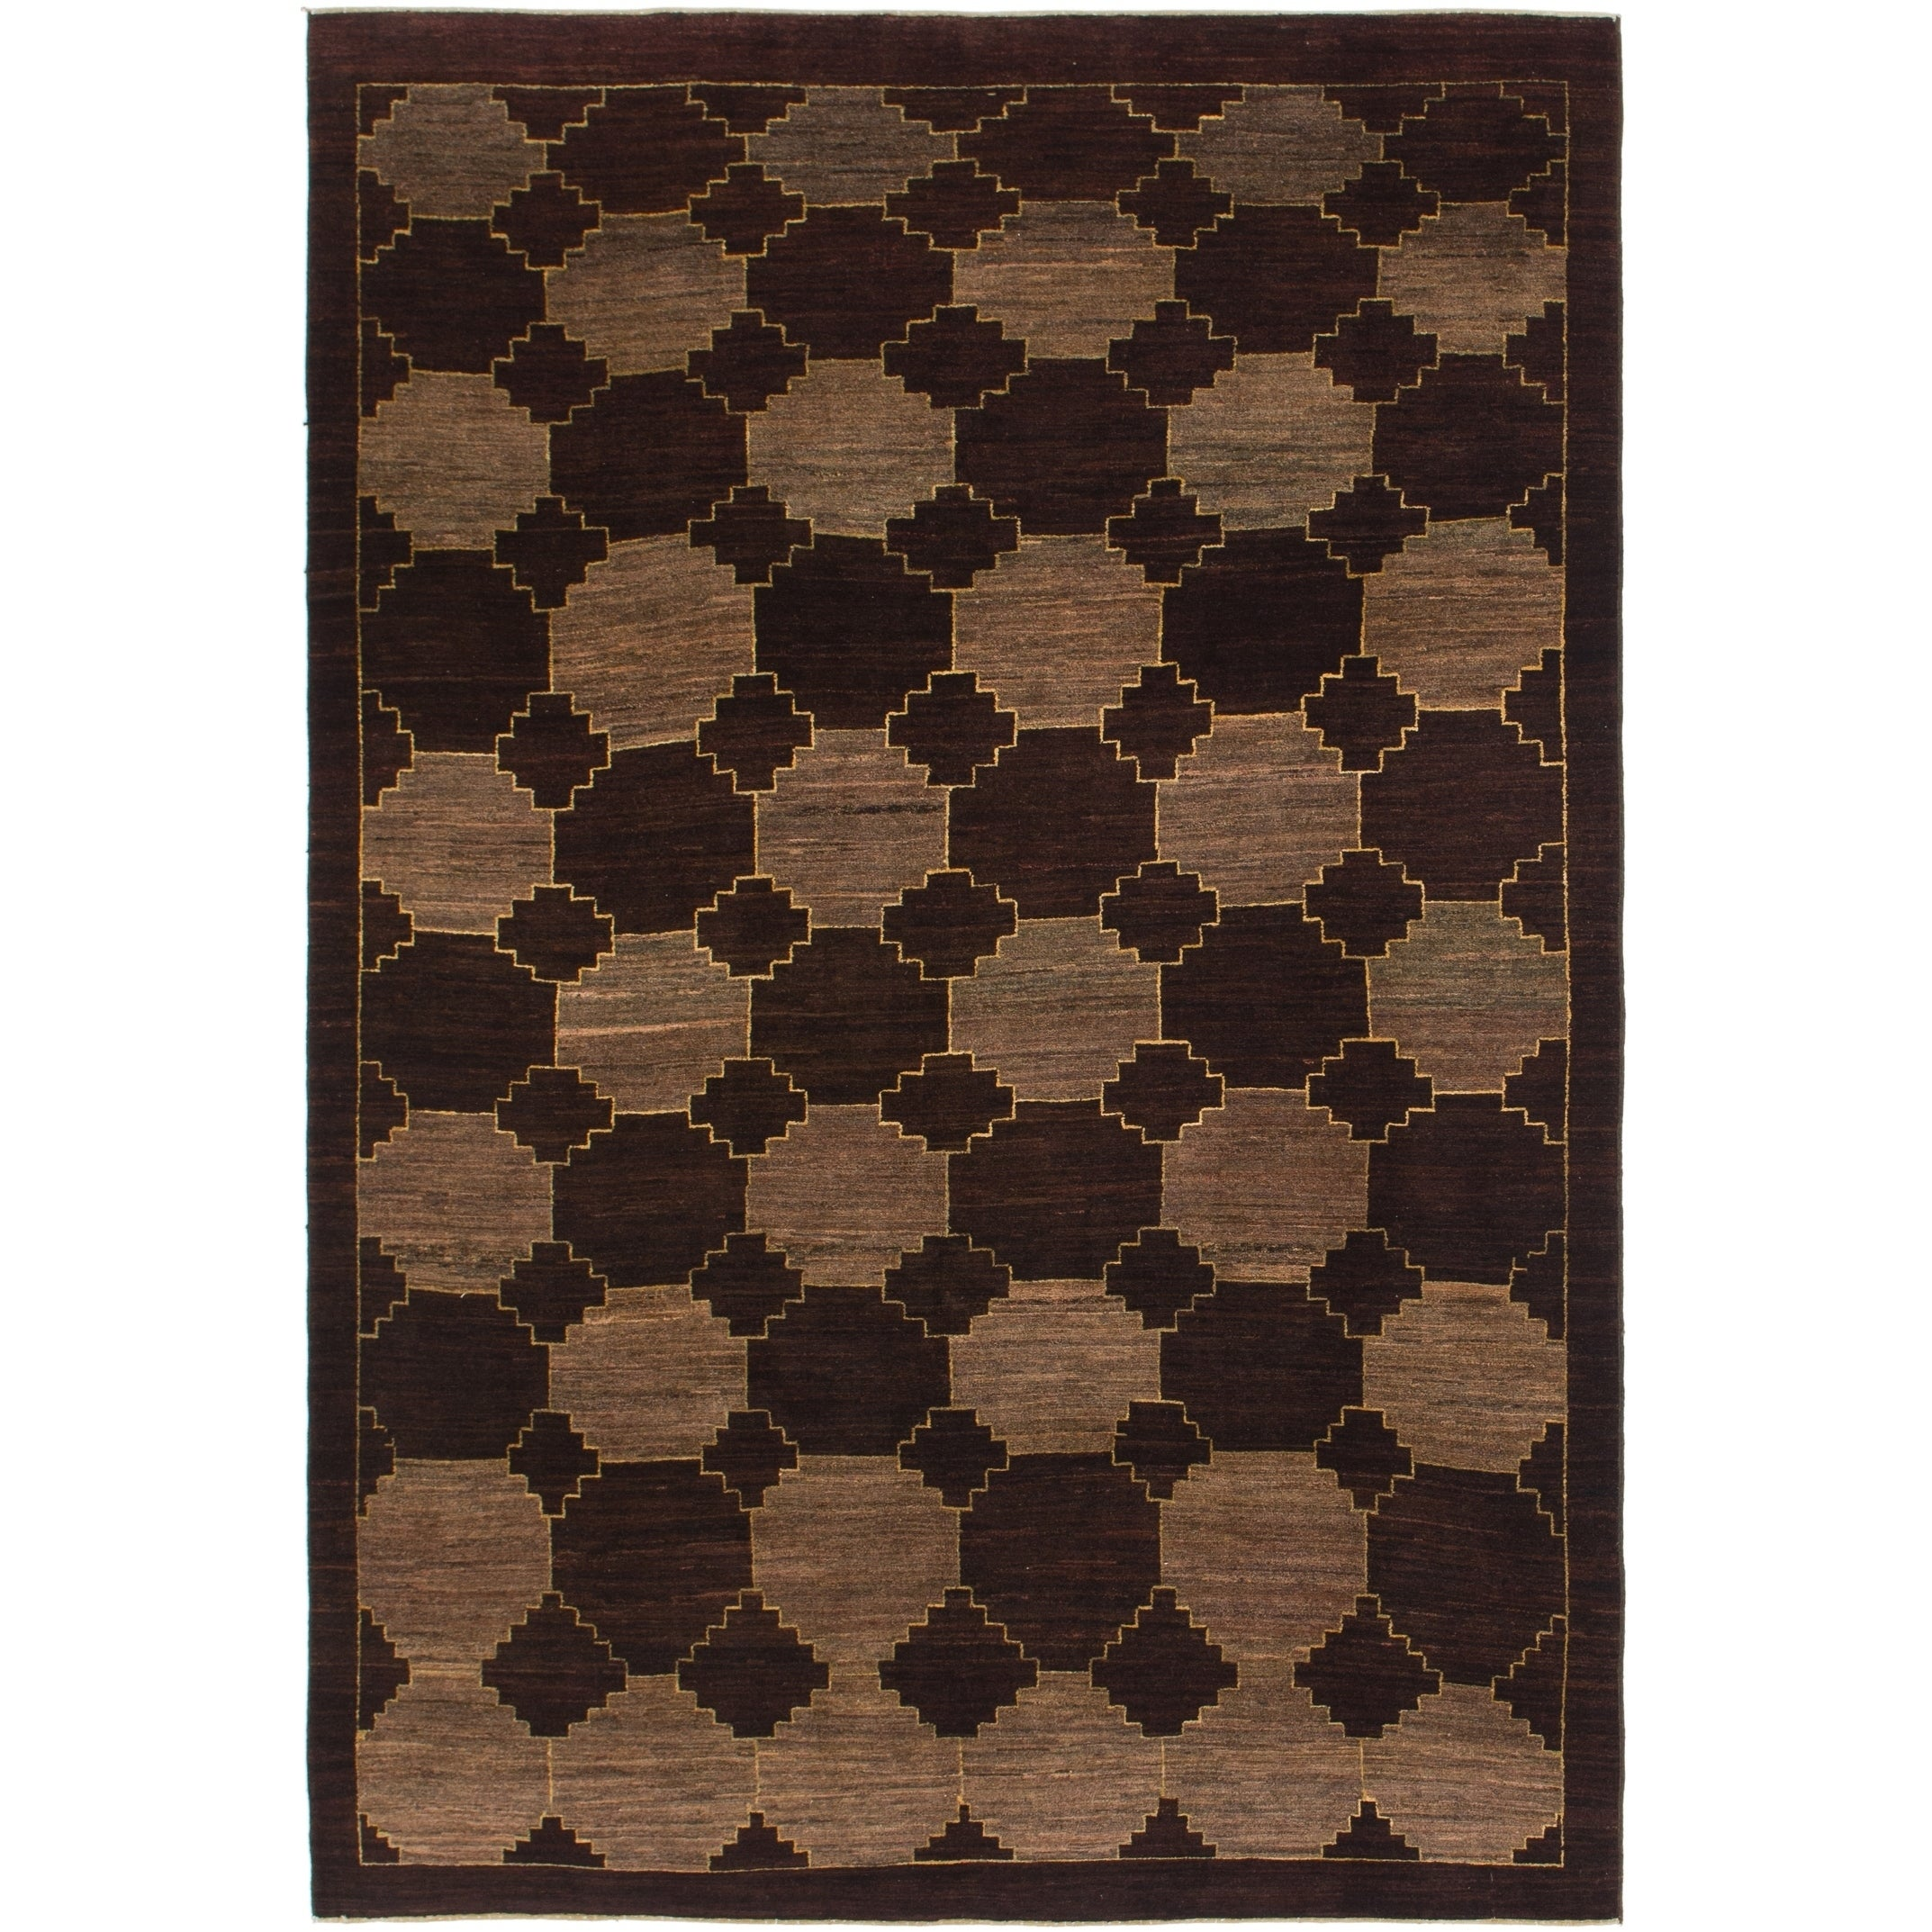 Hand Knotted Kashkuli Gabbeh Wool Area Rug - 6 x 9 (Burgundy - 6 x 9)